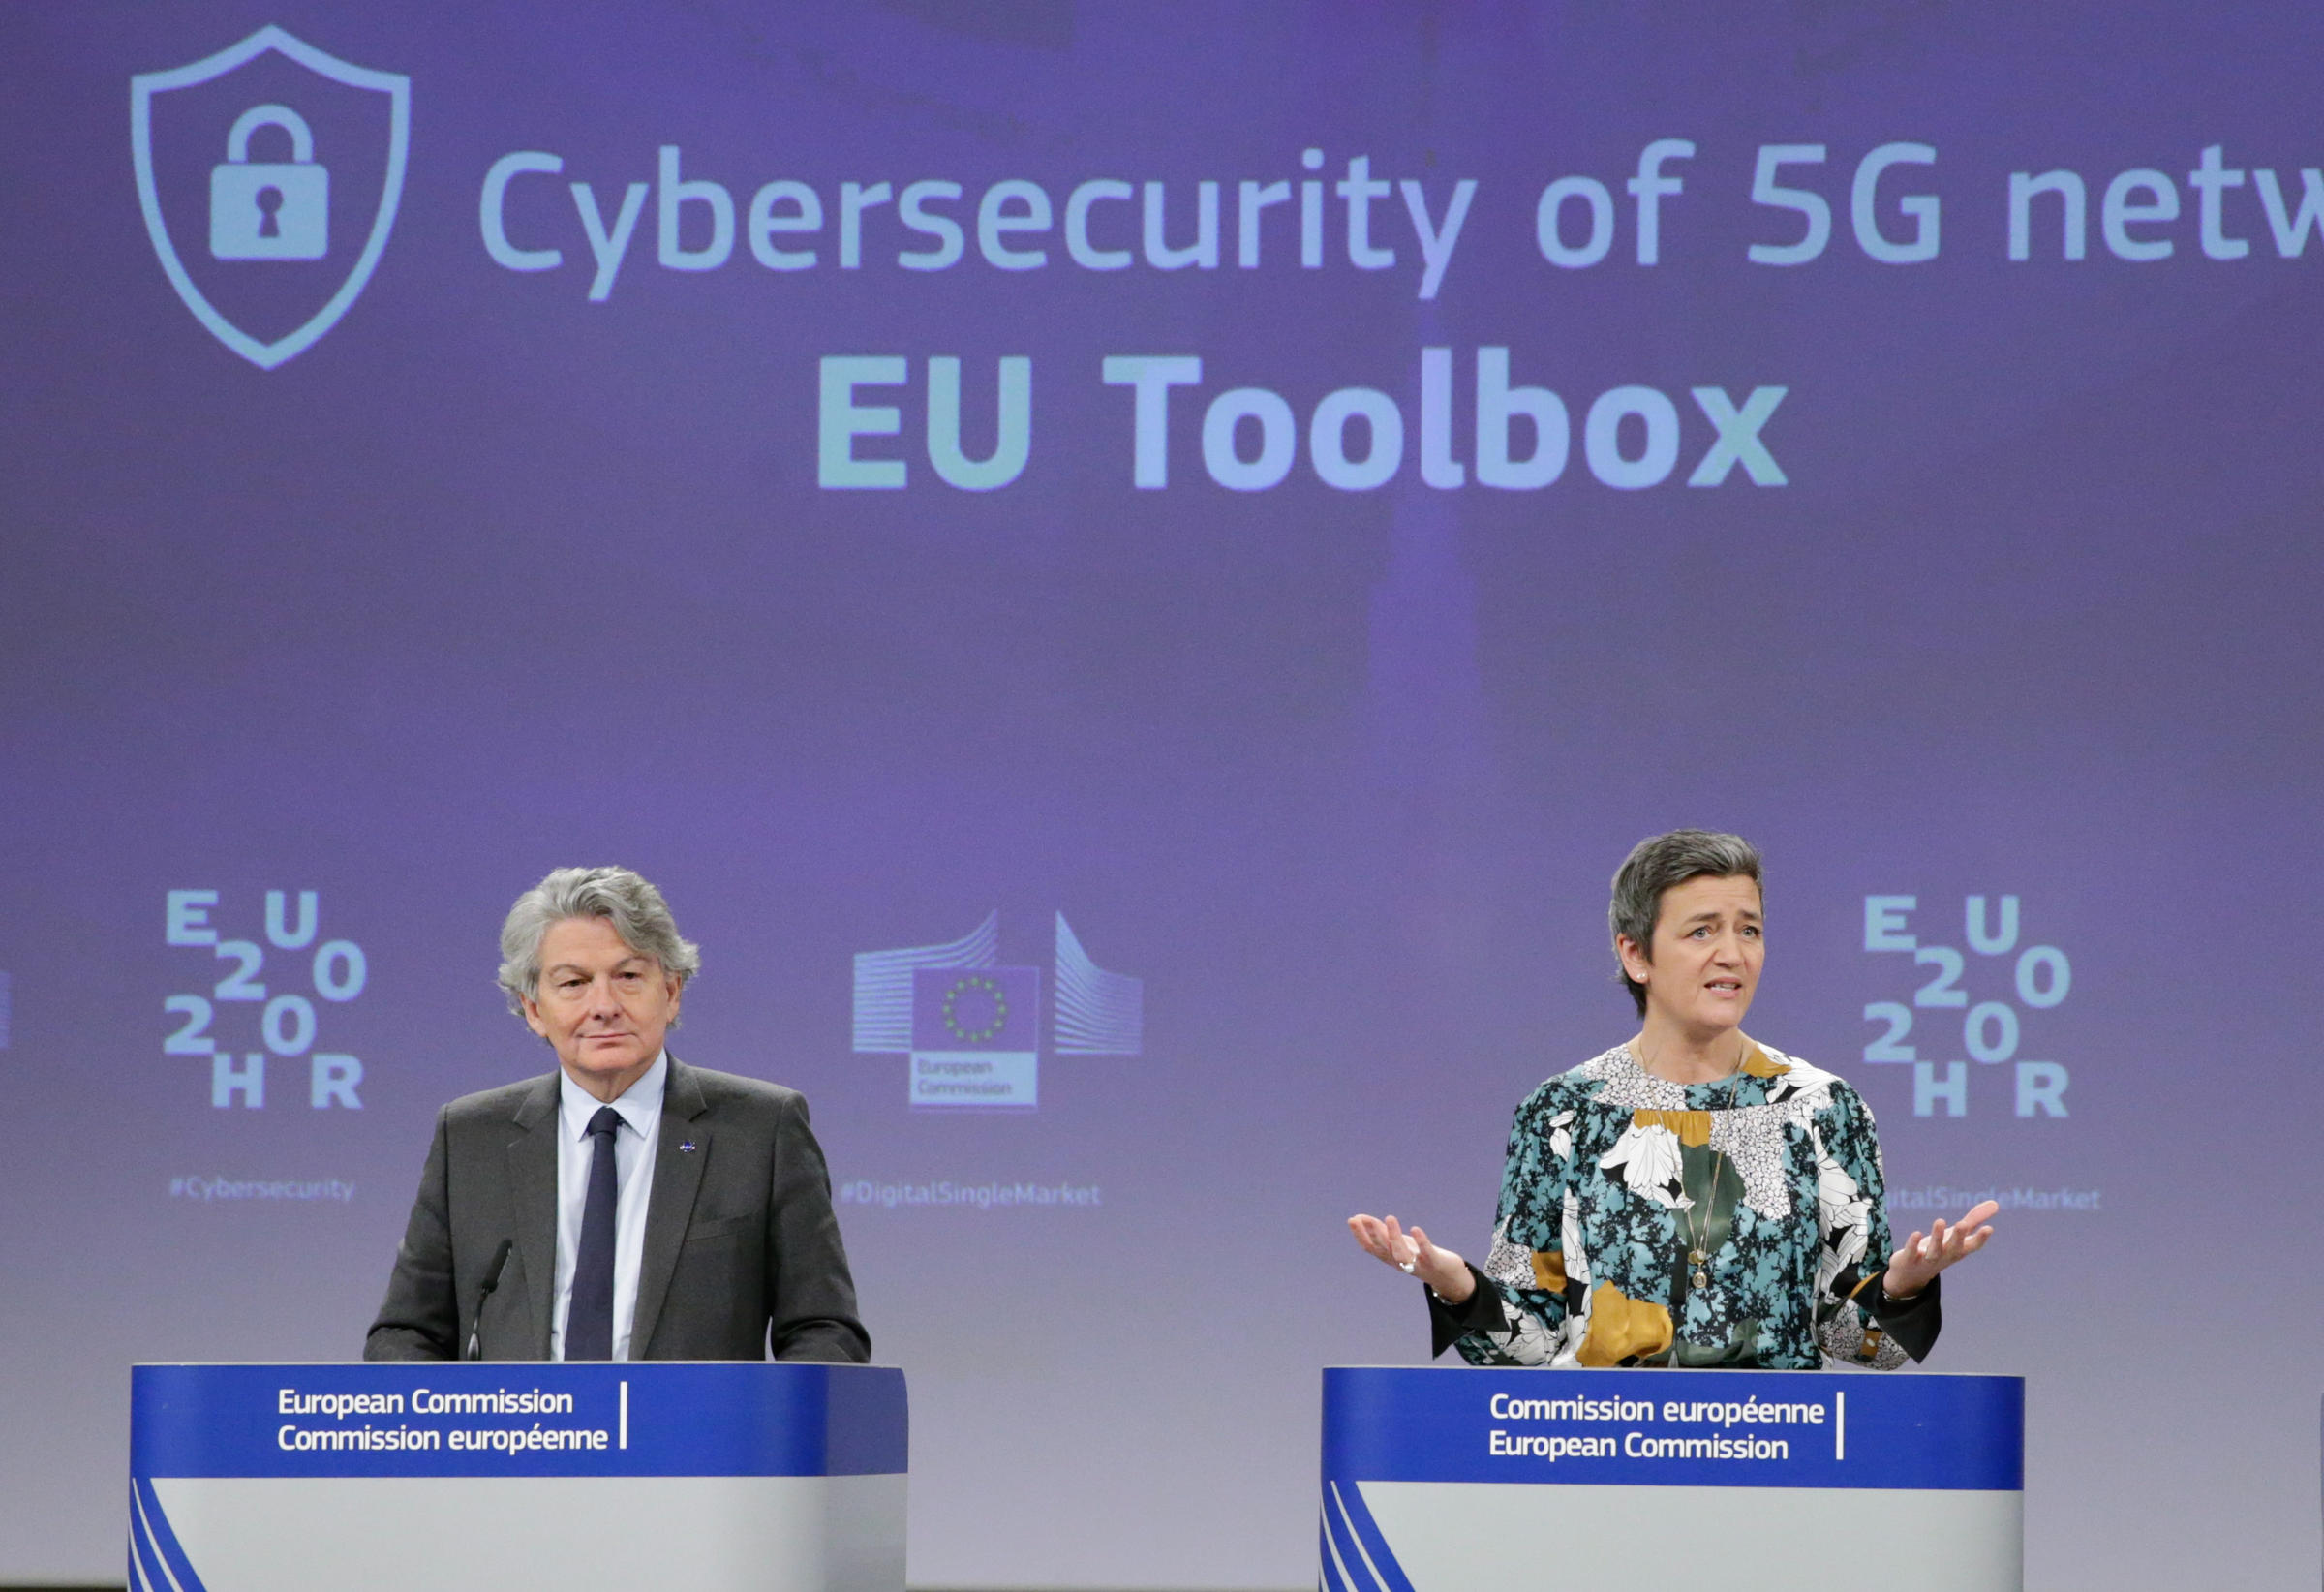 European Union to allow use of Huawei 5G equipment